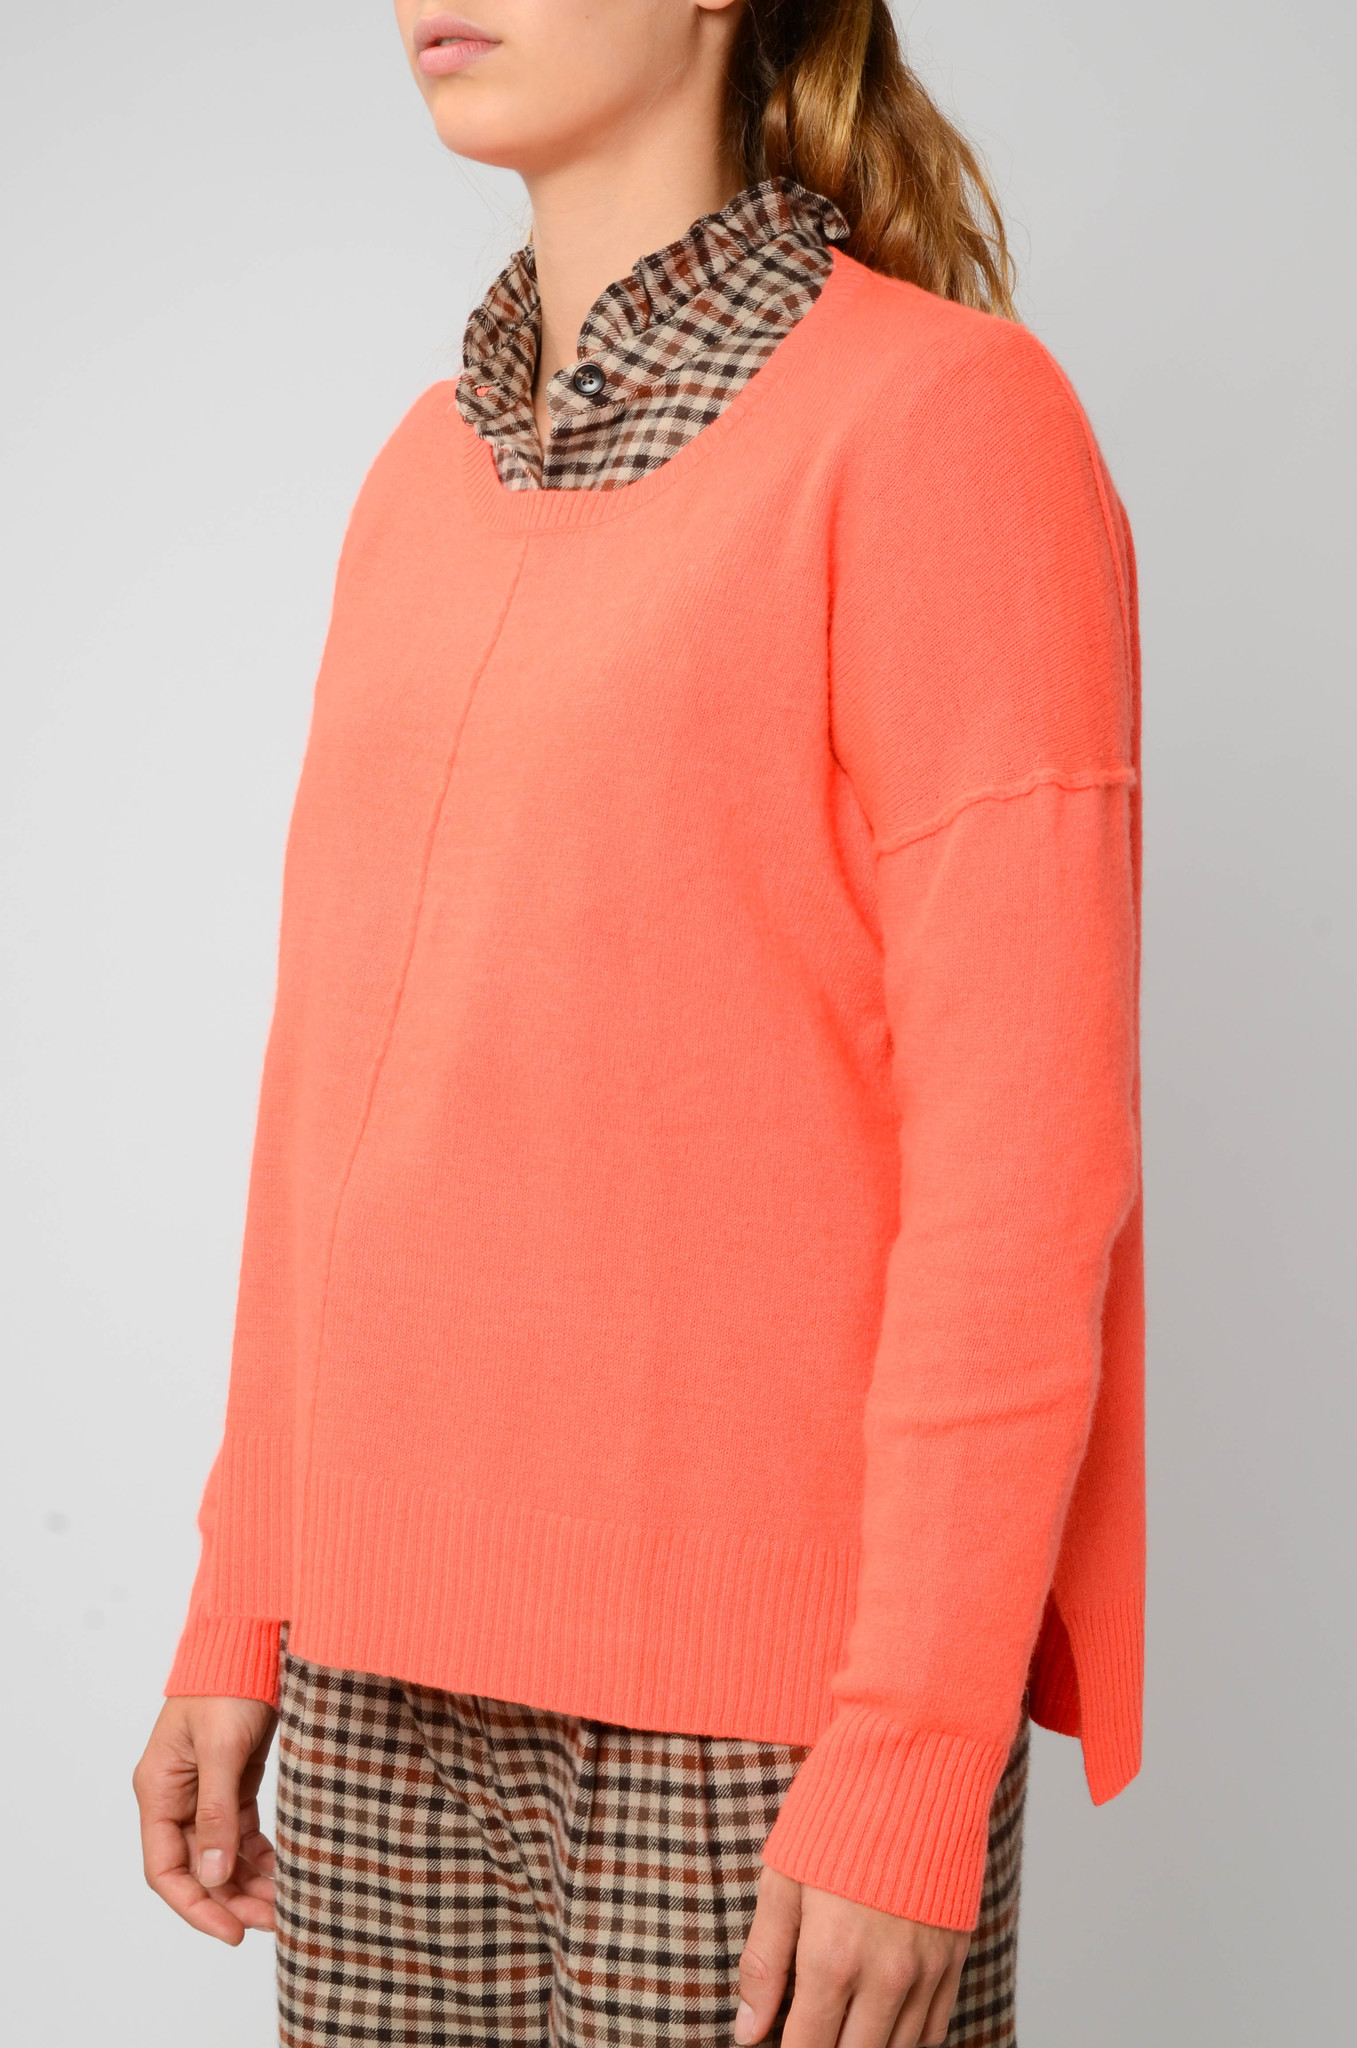 KENZA SWEATER IN NEON CORAL-3